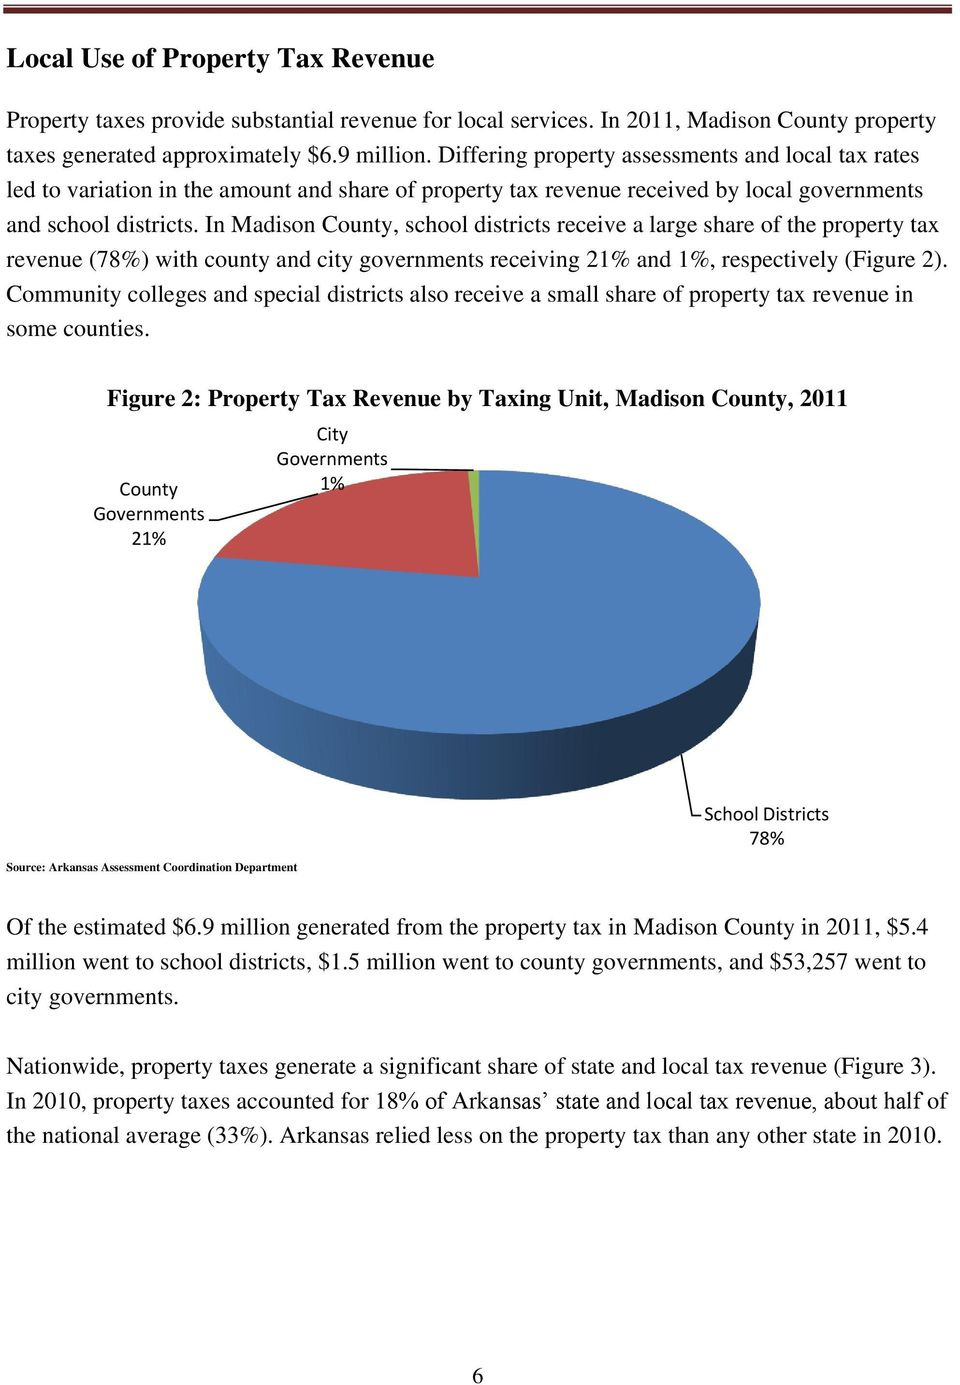 In Madison County, school districts receive a large share of the property tax revenue (78%) with county and city governments receiving 21% and 1%, respectively (Figure 2).